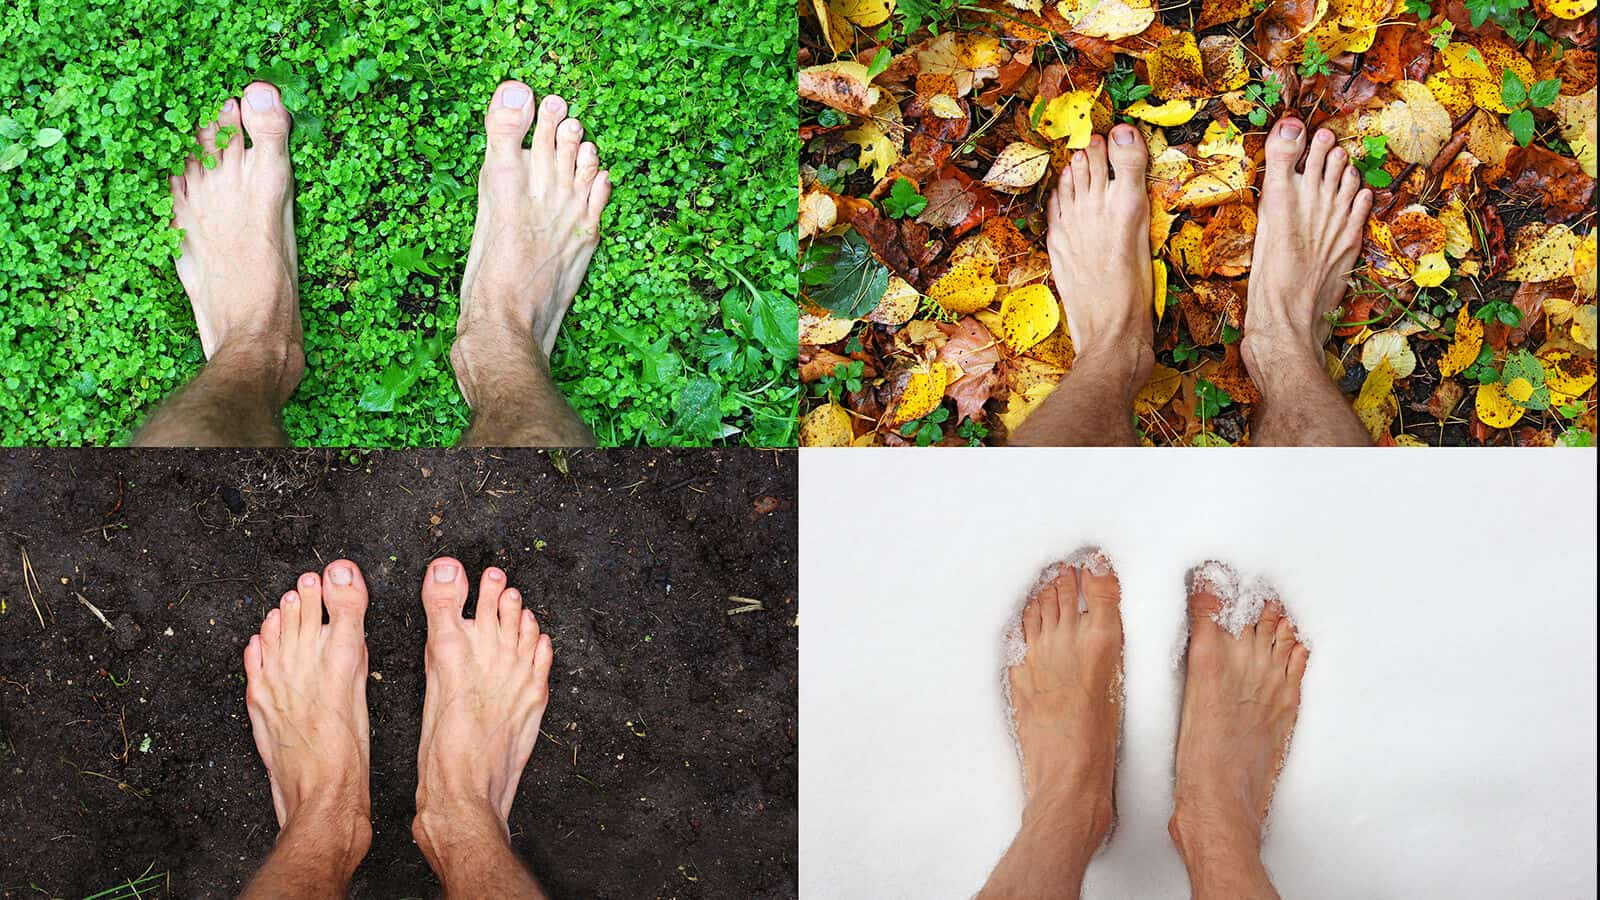 walking with bare feet